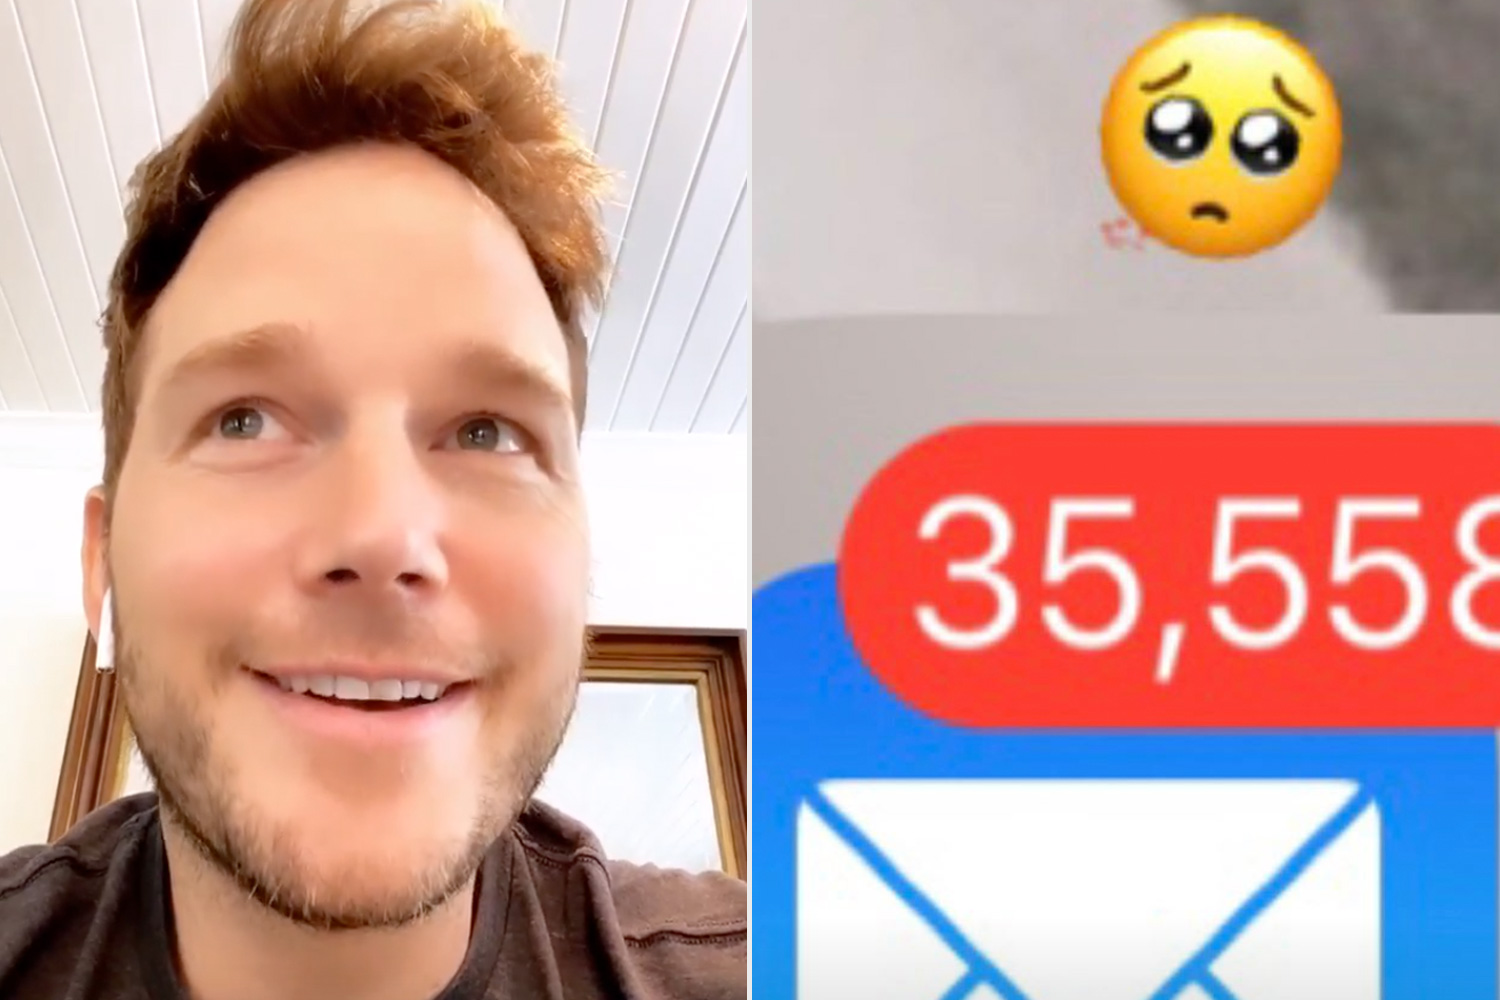 chris pratt's son roasts him over unread emails and then he deletes them all